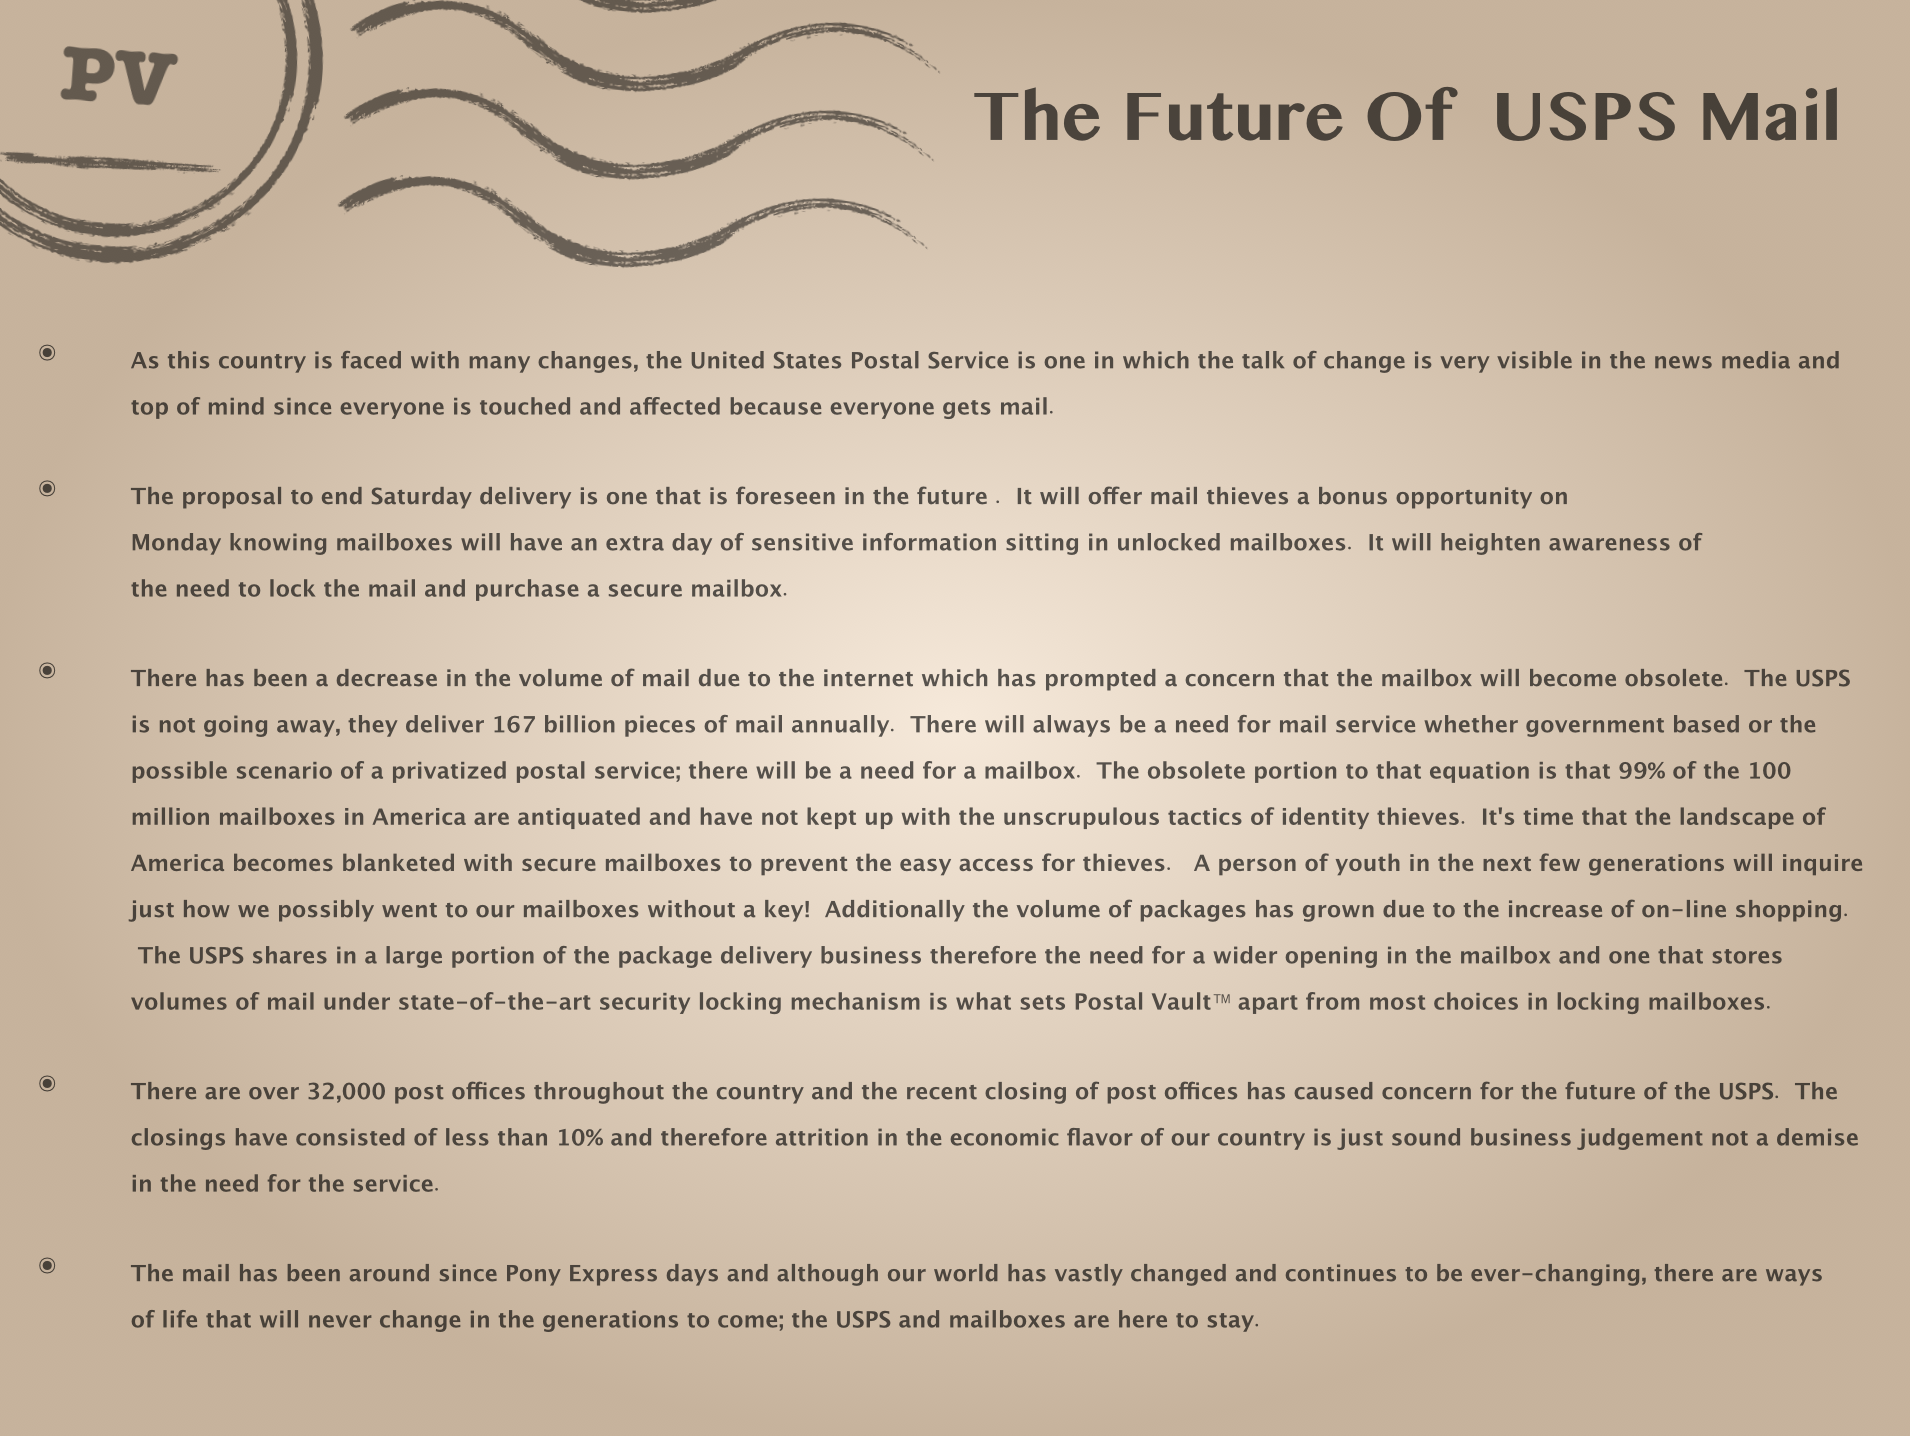 The Future Of The USPS